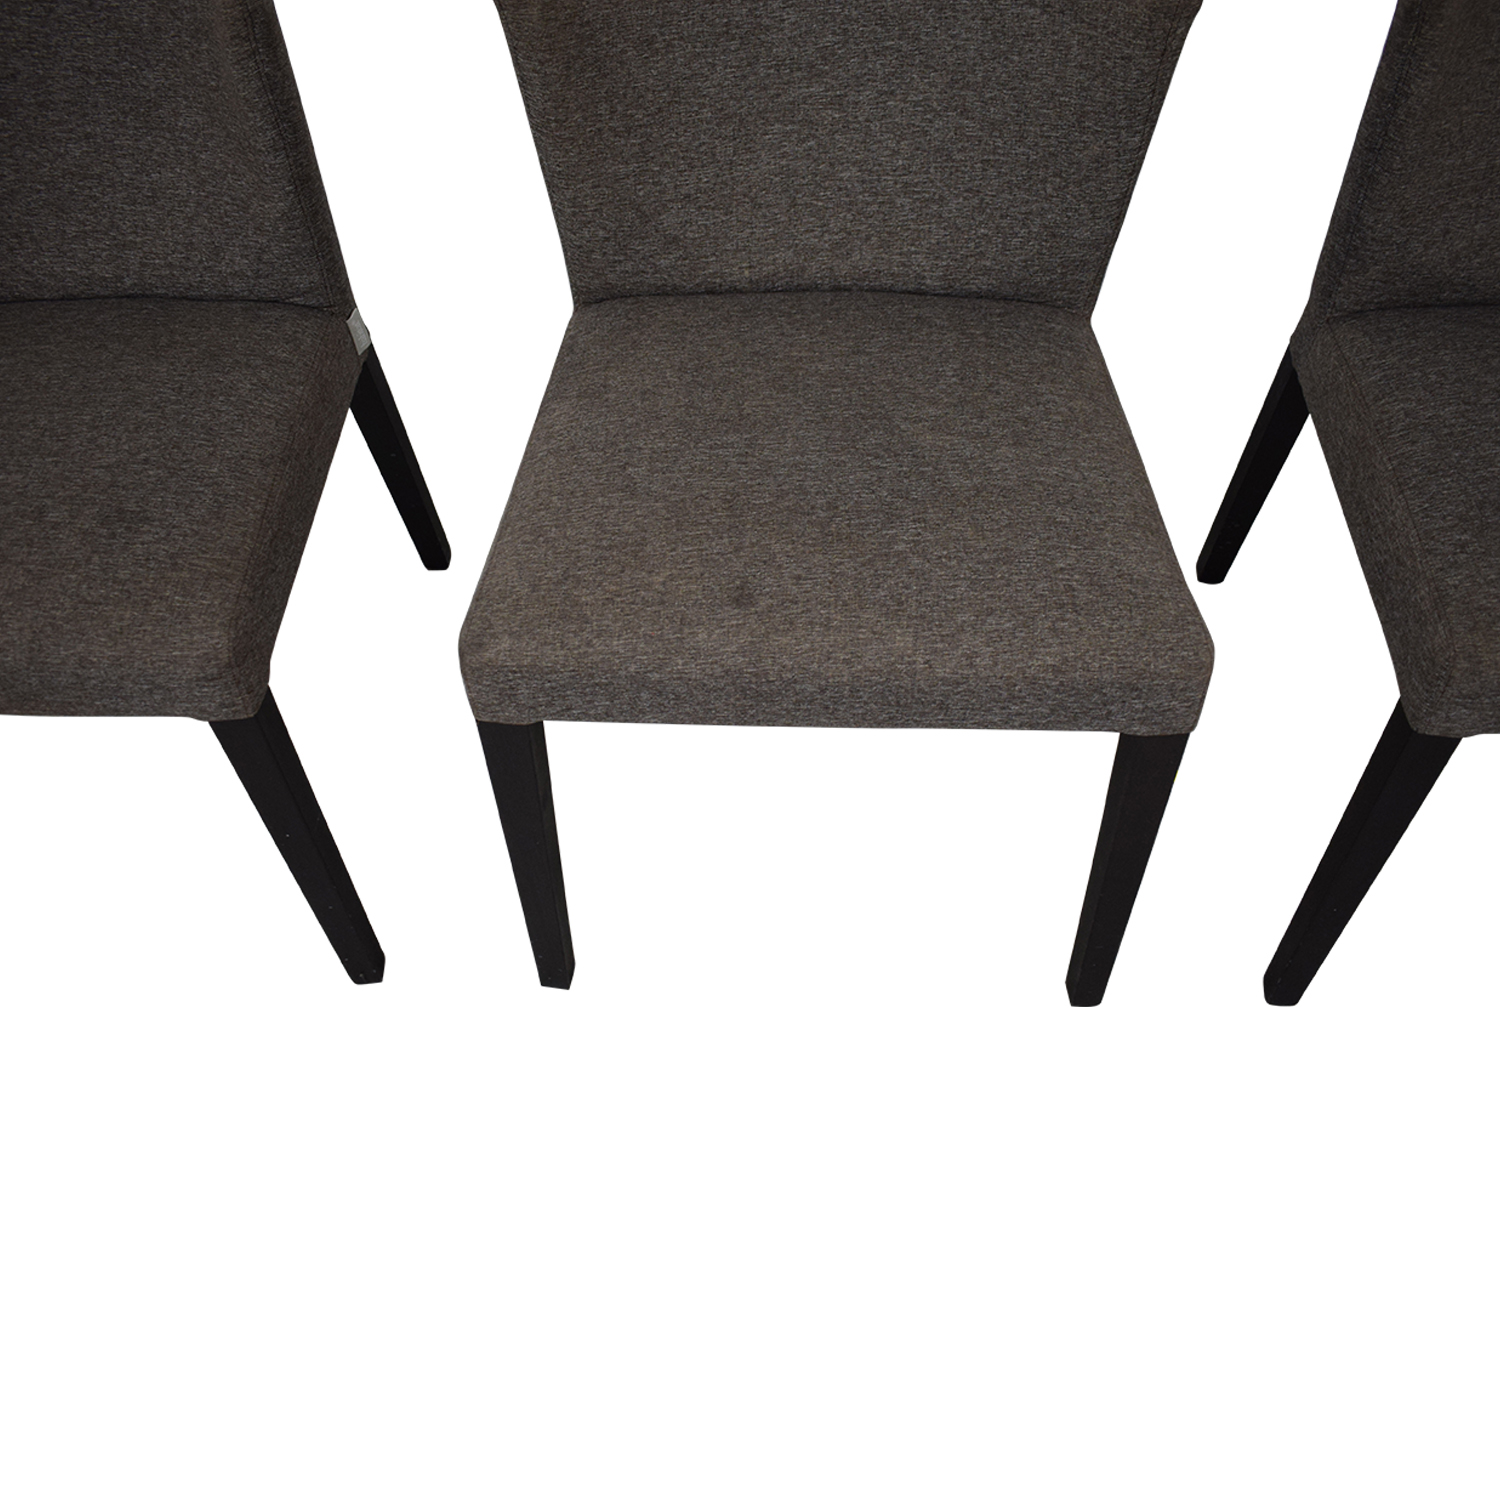 Heal's of London Heals of London Habitat Grey Upholstered Dining Chairs Gray